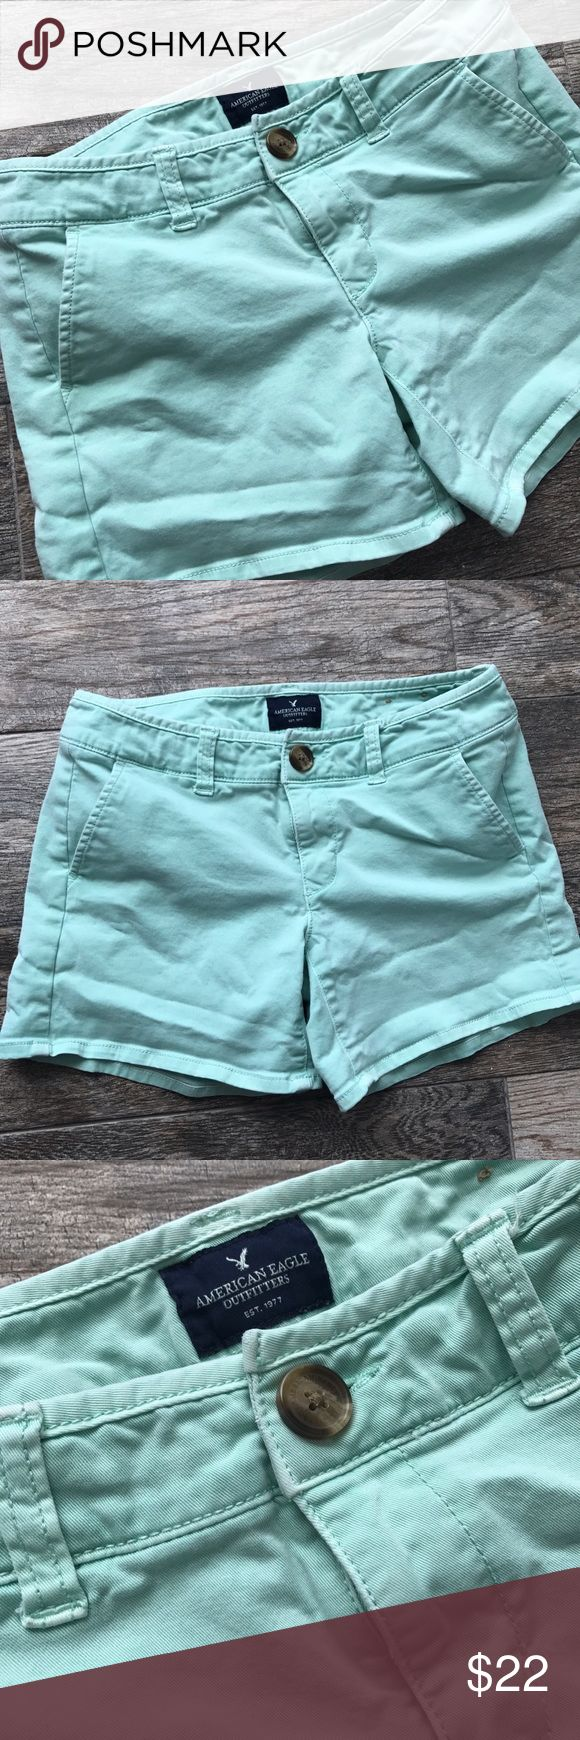 American Eagle Midi Solid Mint/ Light Blue Shorts American Eagle Solid Mint/ Light Blue Shorts - Stretch/ Size 2. American Eagle Outfitters Shorts